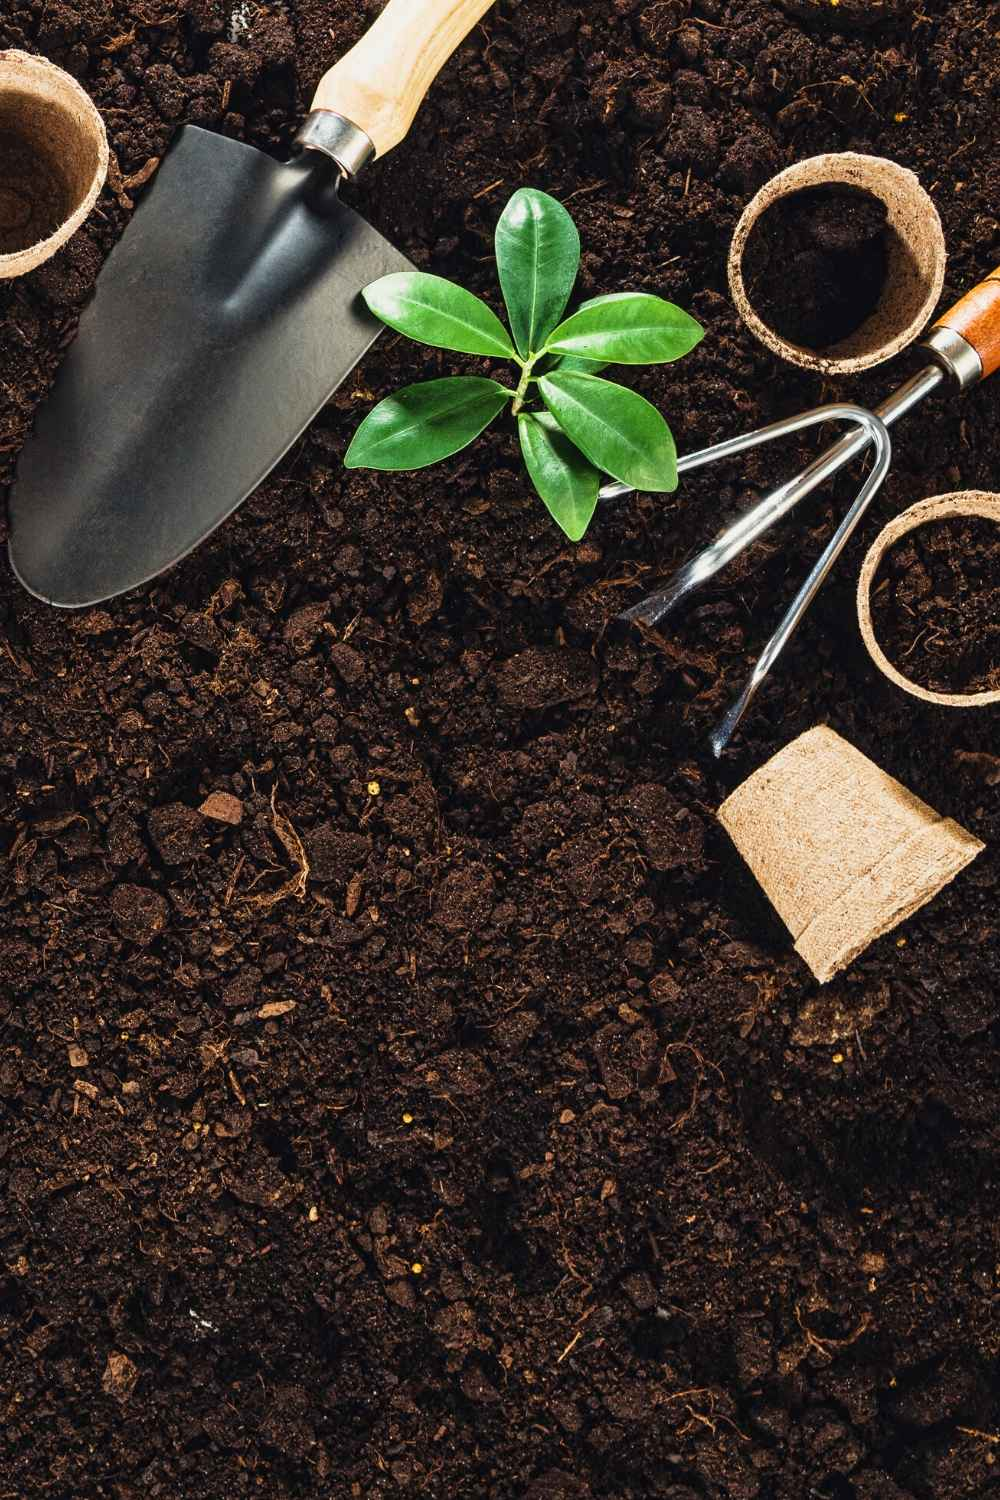 allotment tools and earth